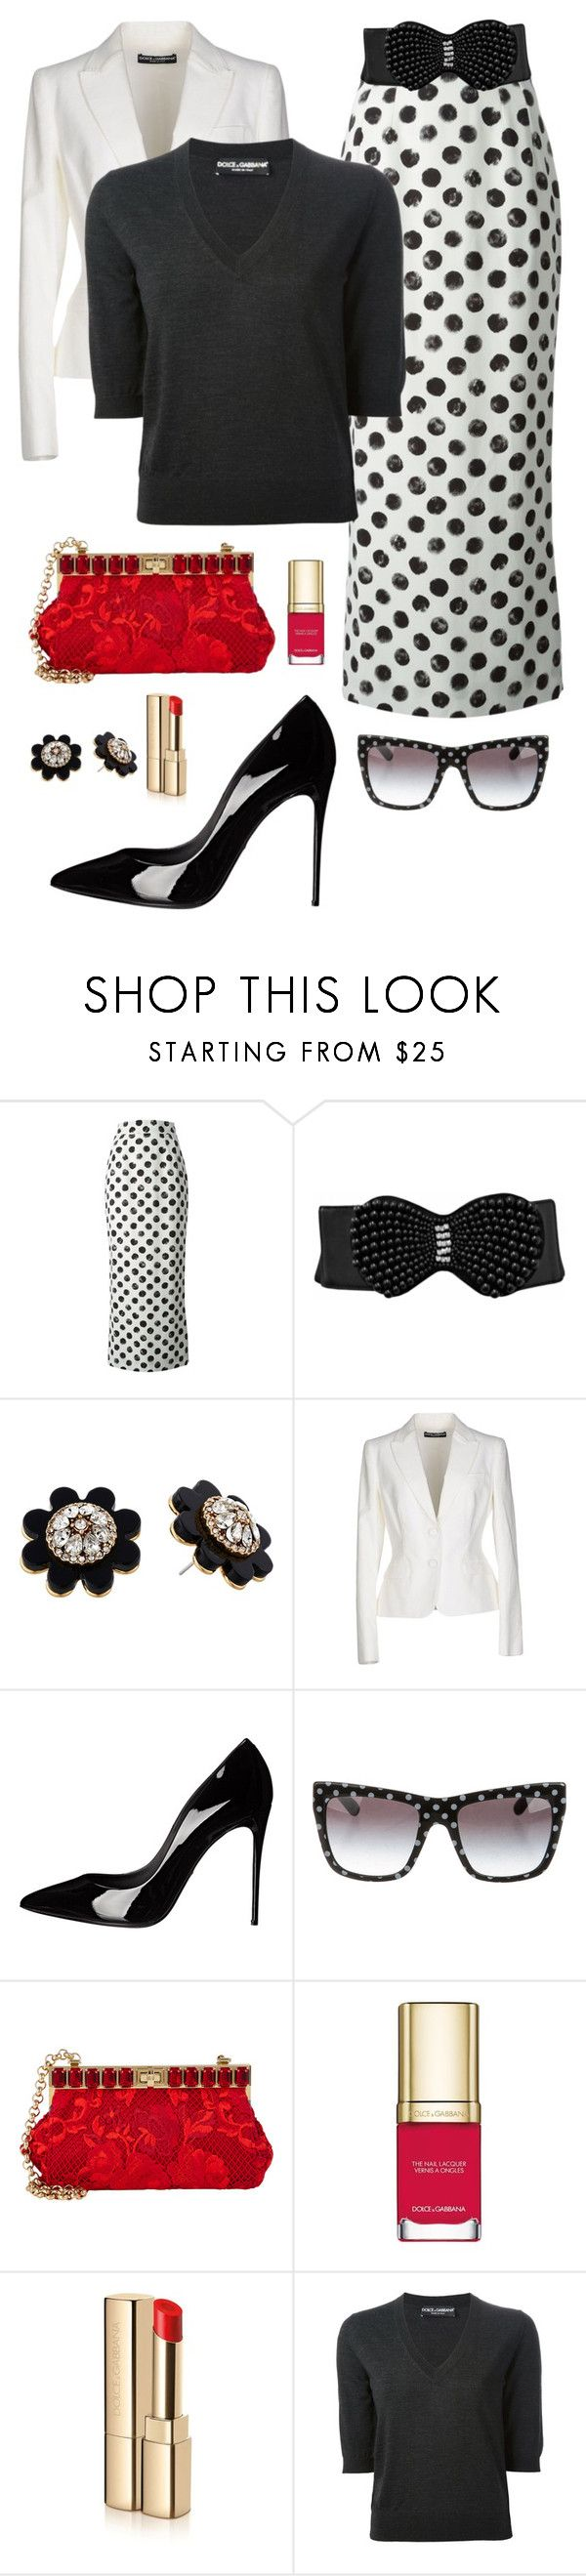 """""""Belted Maxi Skirt"""" by ann-kelley14 on Polyvore featuring Dolce&Gabbana and Kate Spade"""